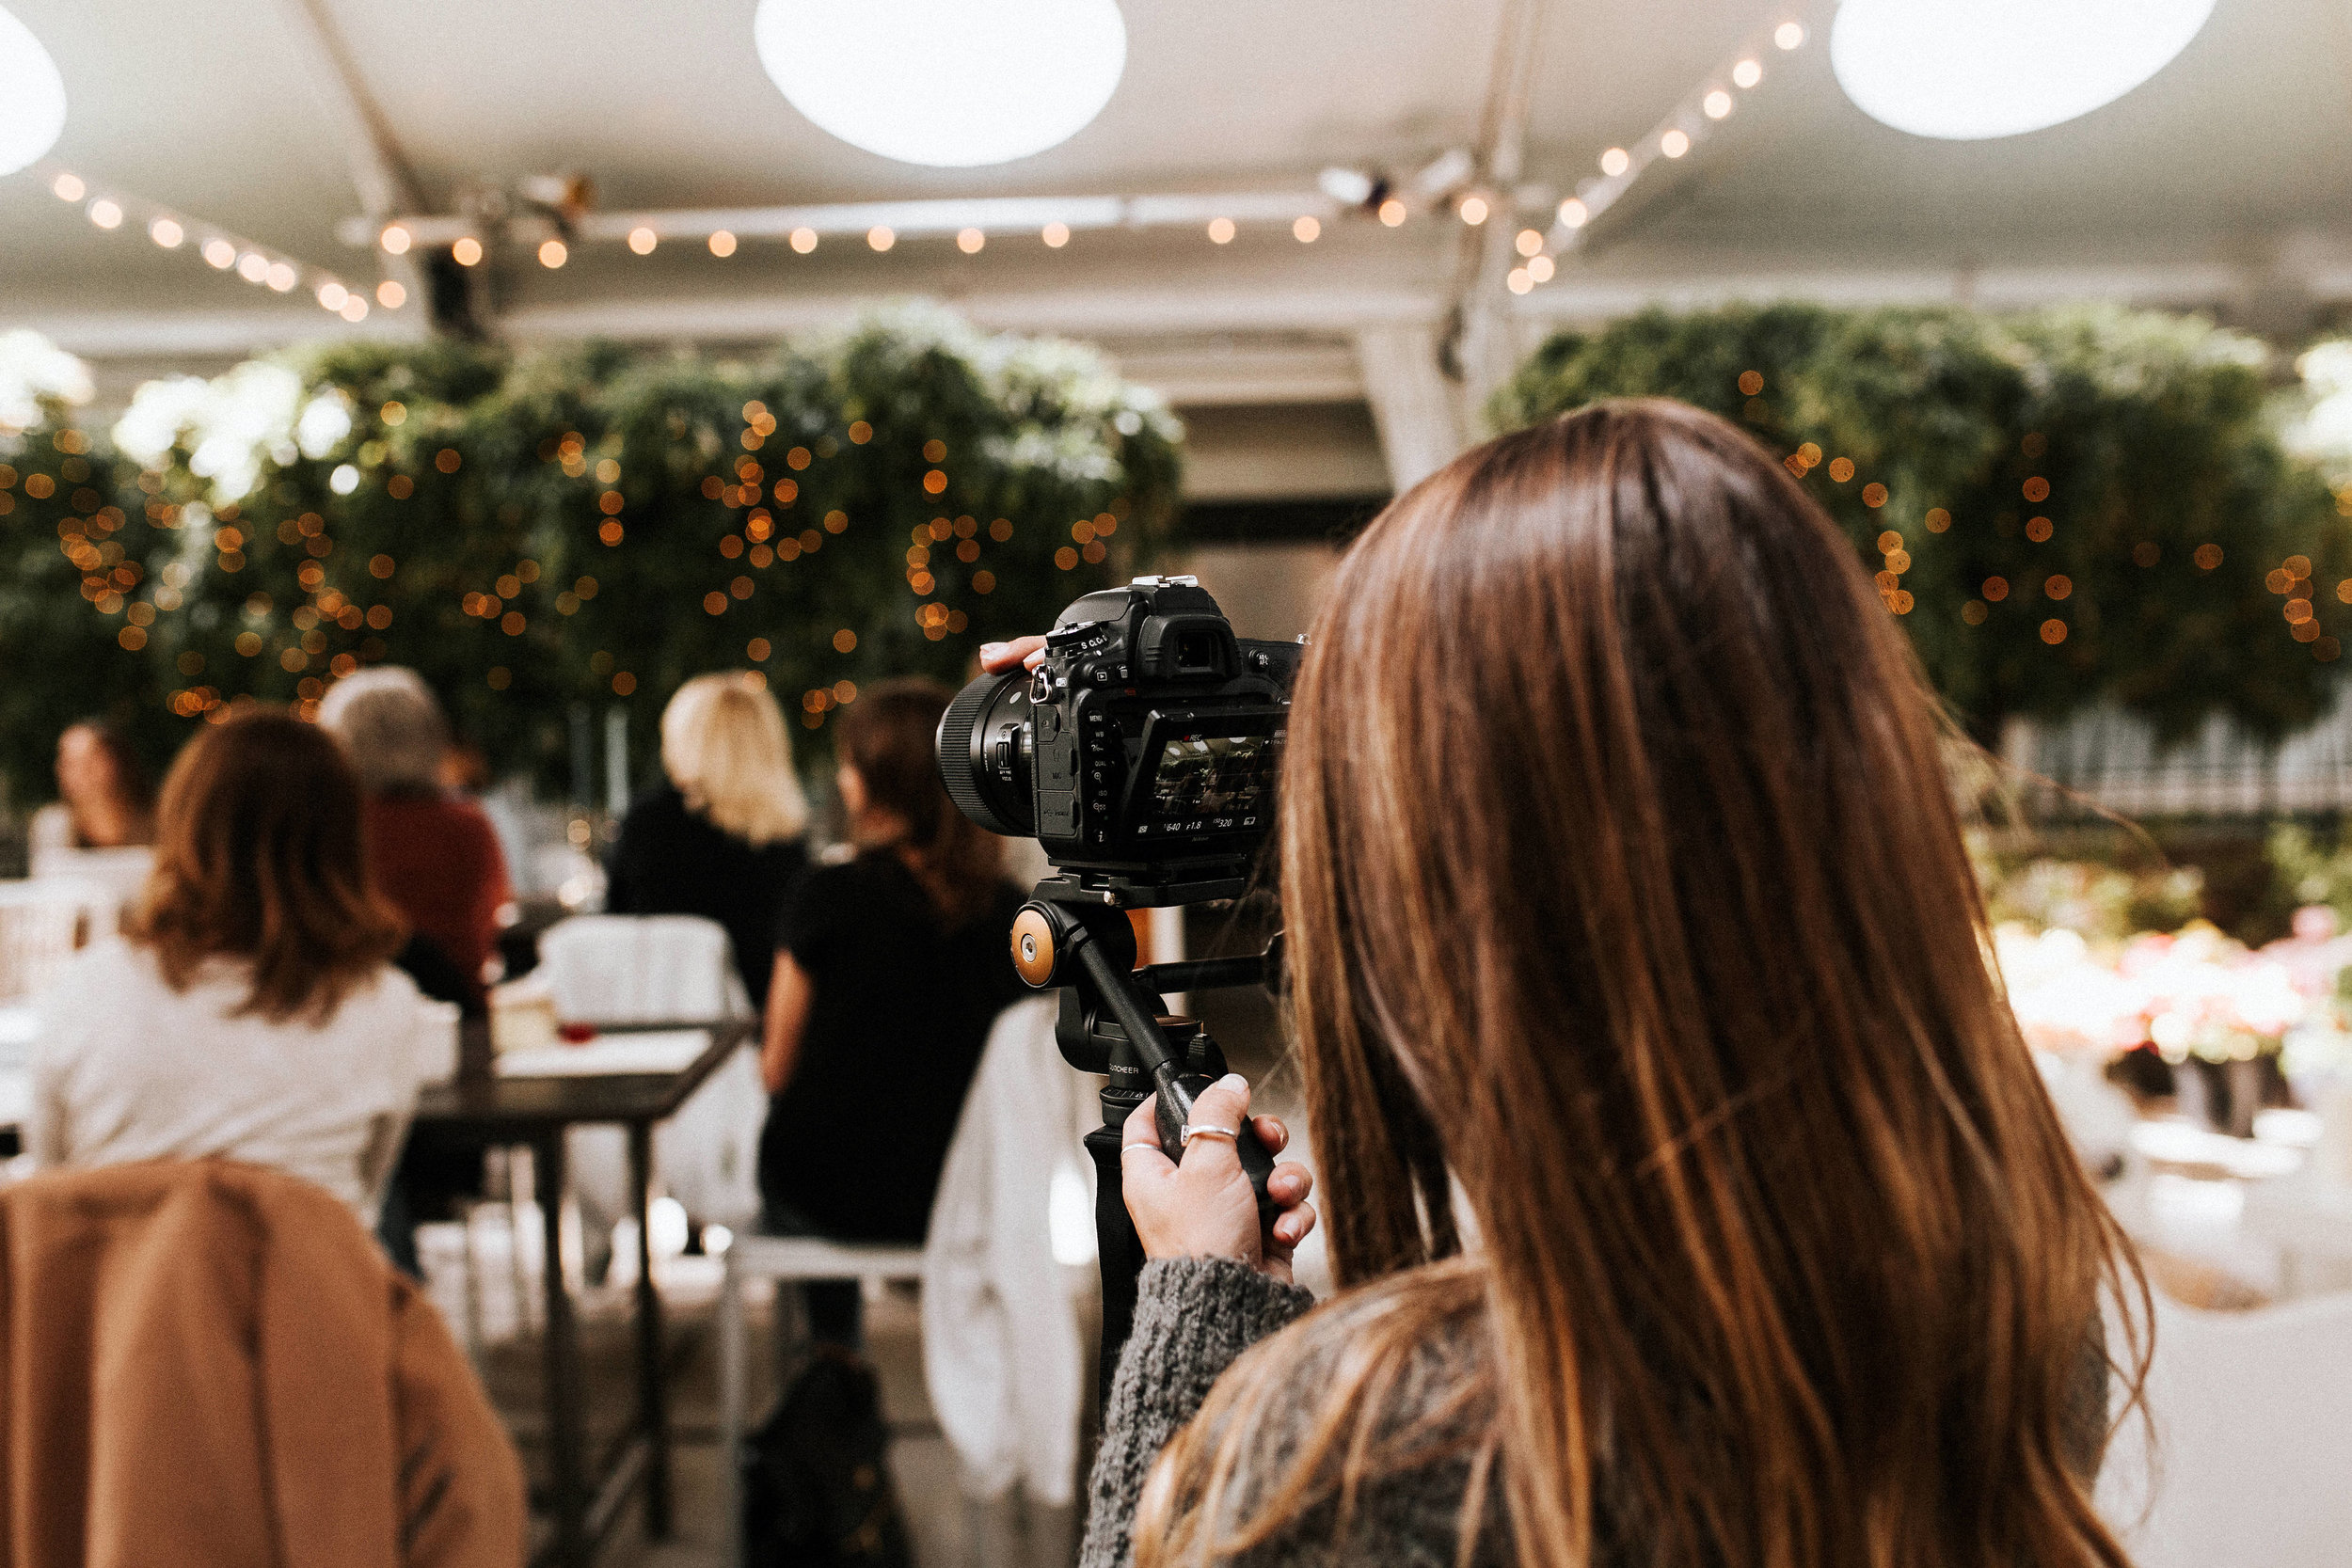 photogaphing a wedding themed styled shoot